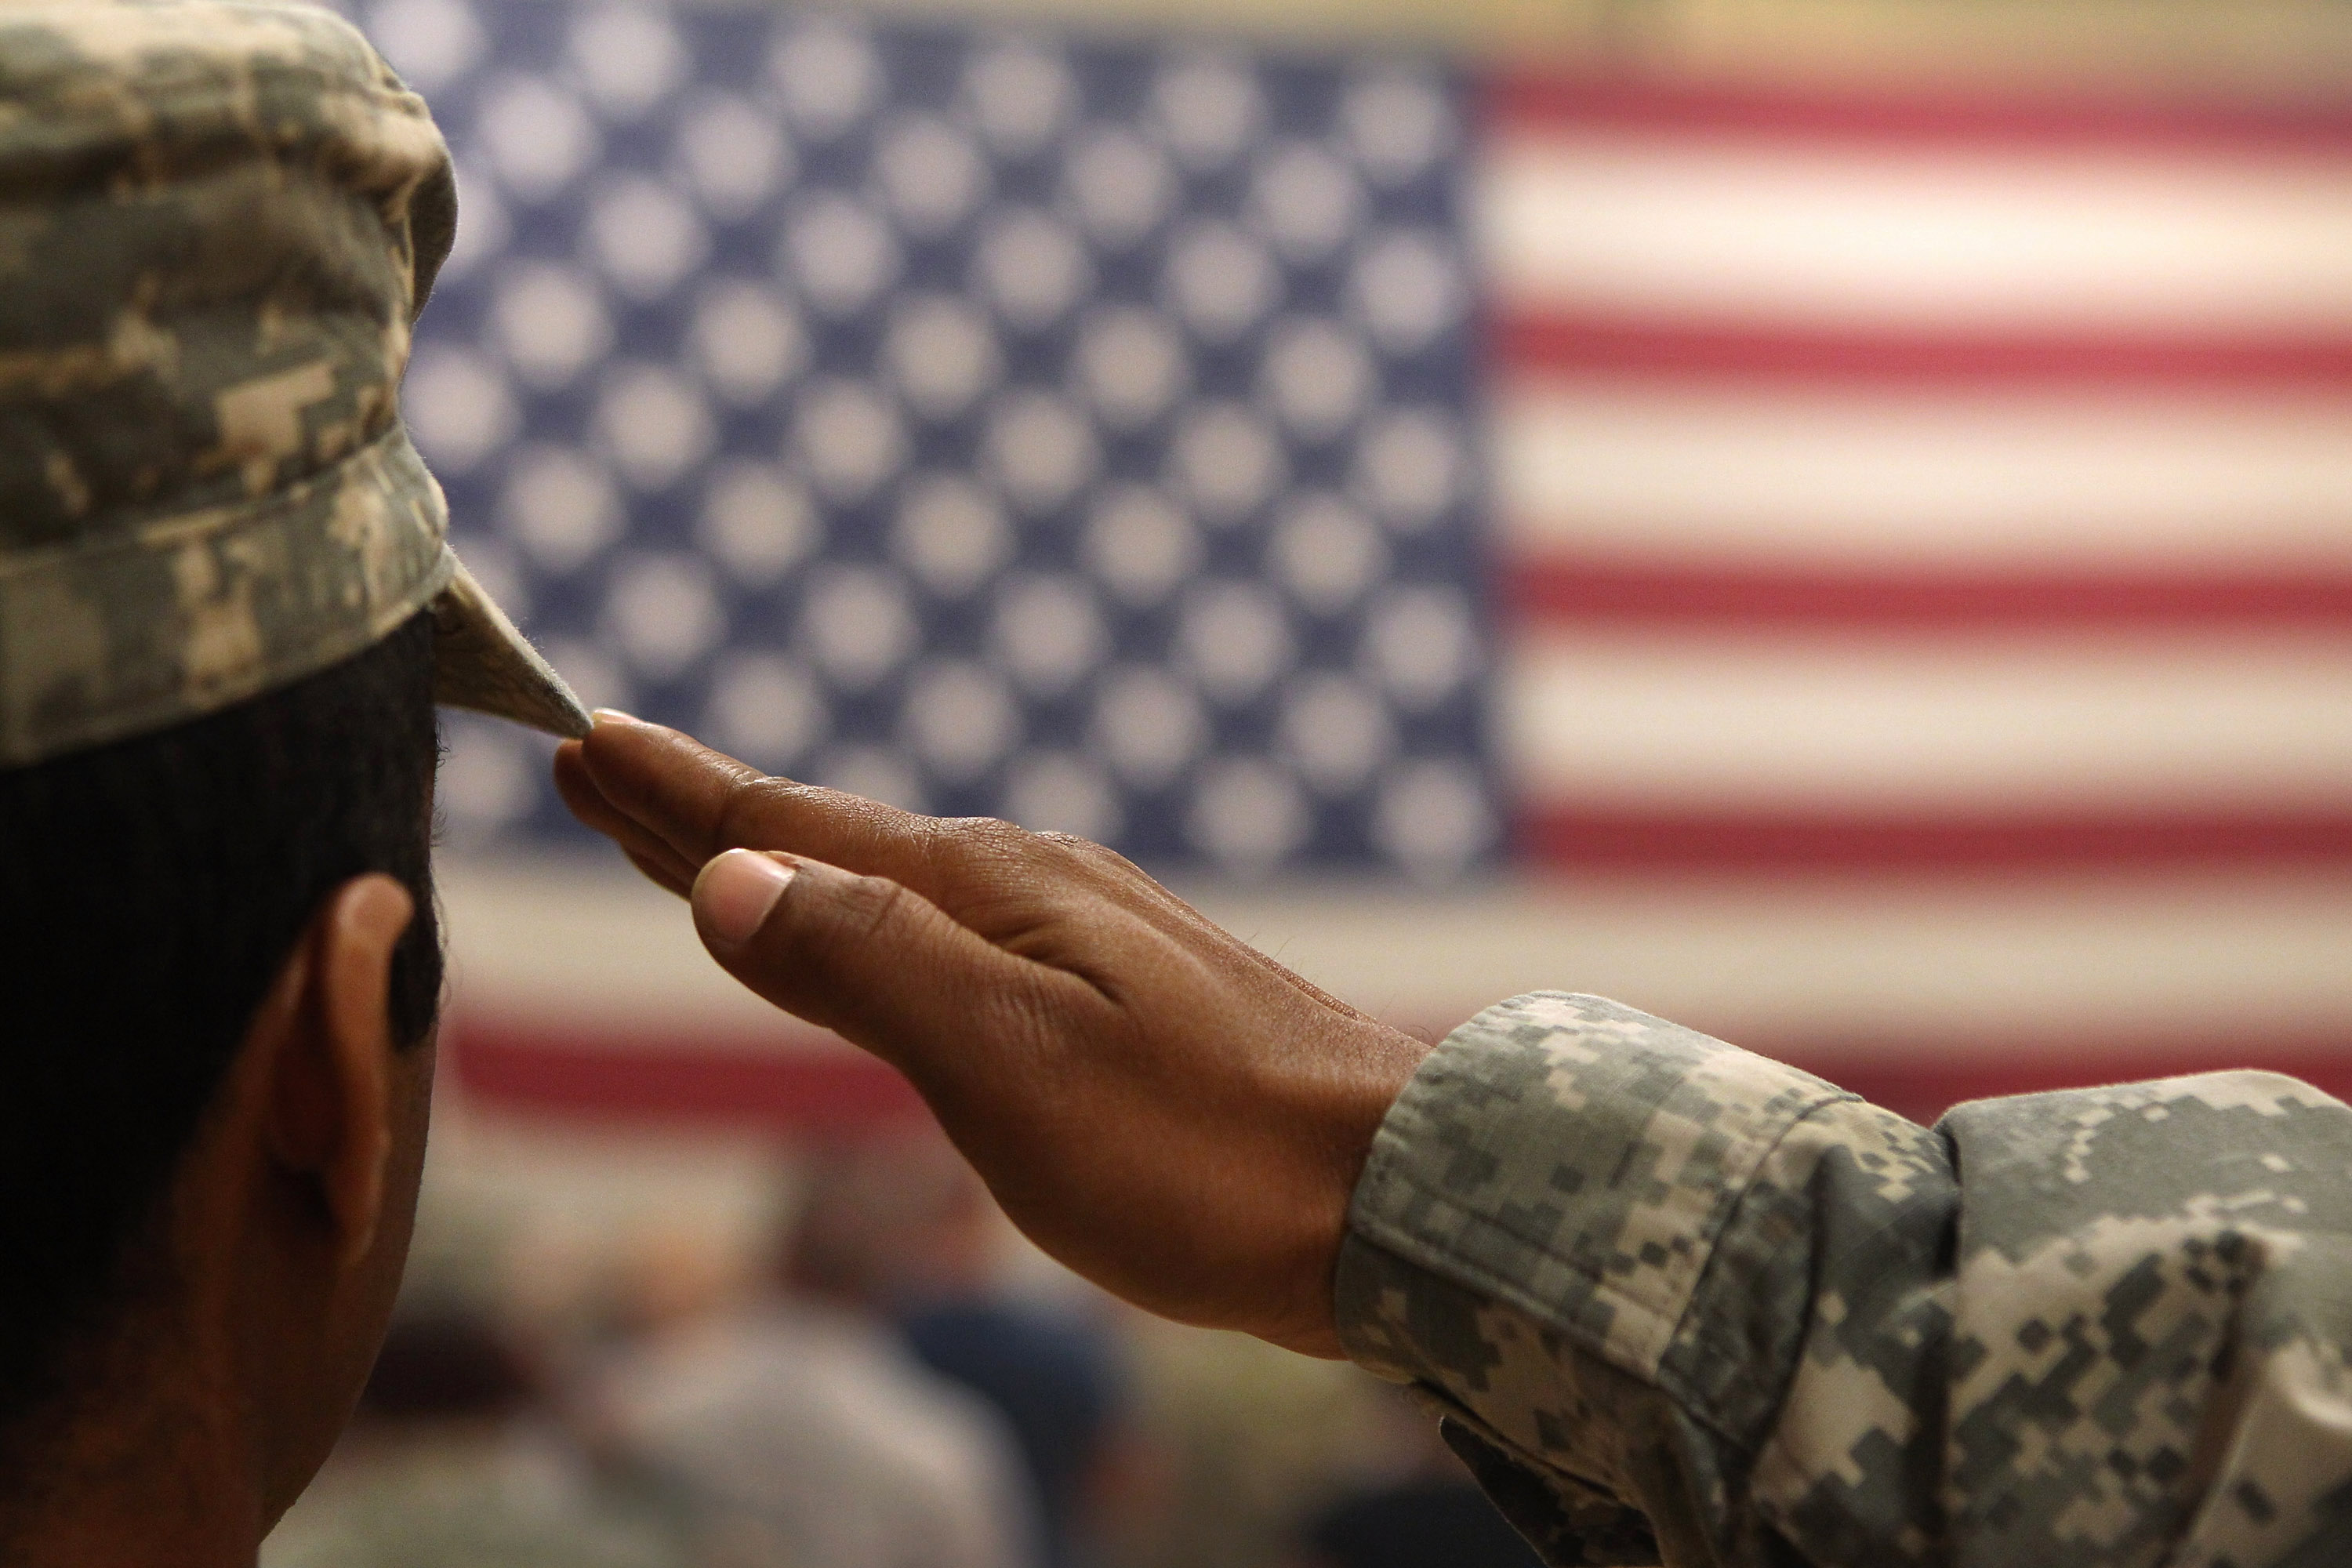 A soldier salutes the flag during a welcome home ceremony for troops arriving from Afghanistan on June 15, 2011 to Fort Carson, Colorado. (Photo by John Moore/Getty Images)